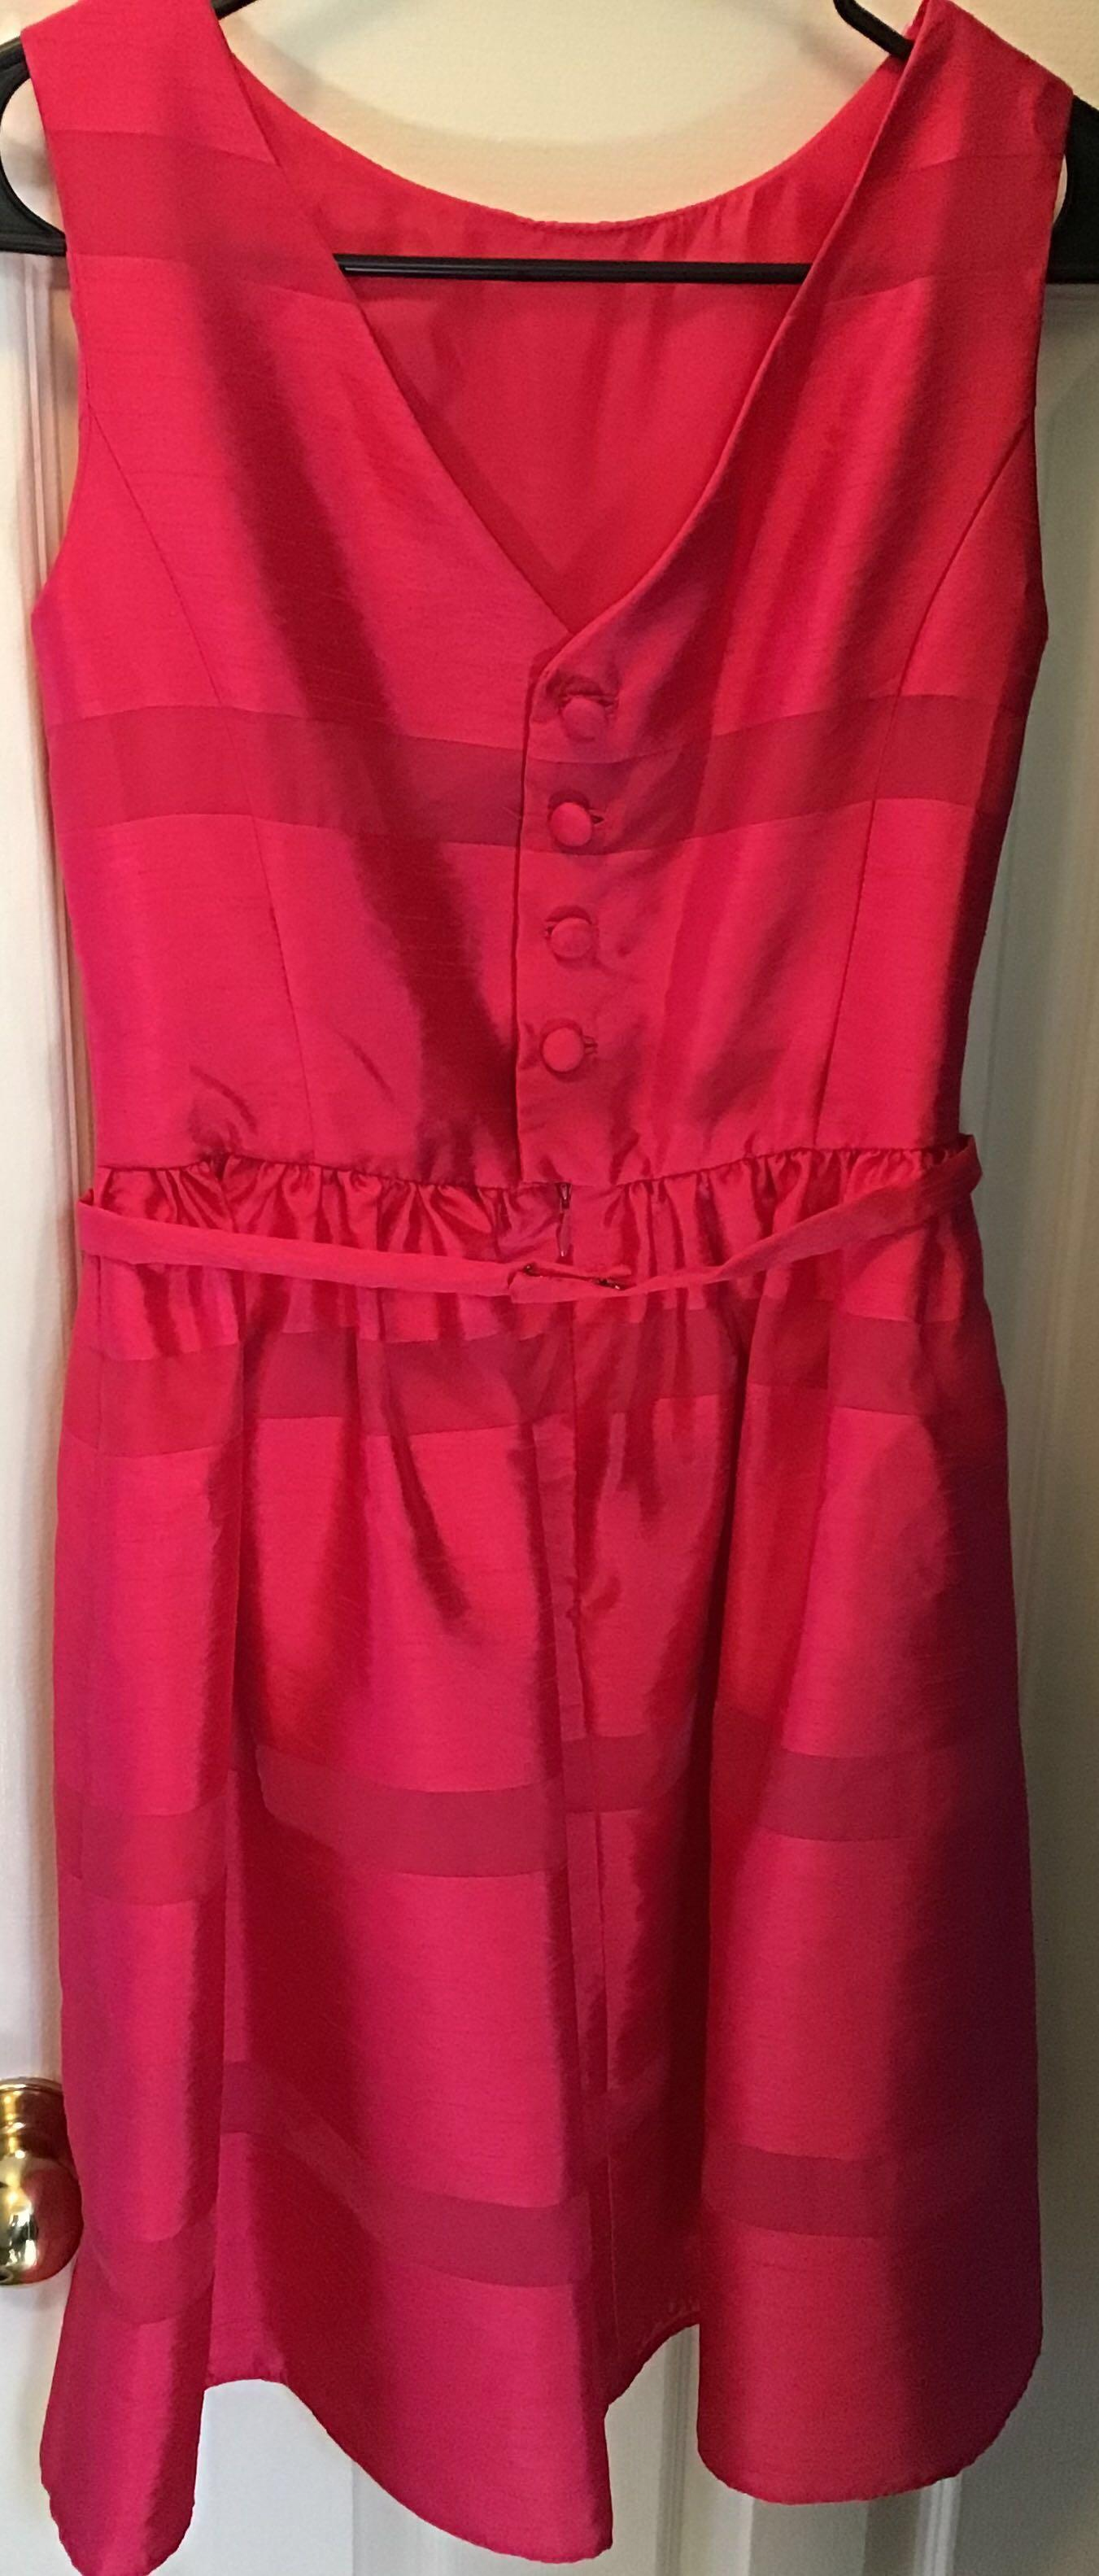 'Perfect in Pink' Tailored Fit + Flair Bright Pink Dress w/Bow Belt Special Occasion Sz. 2